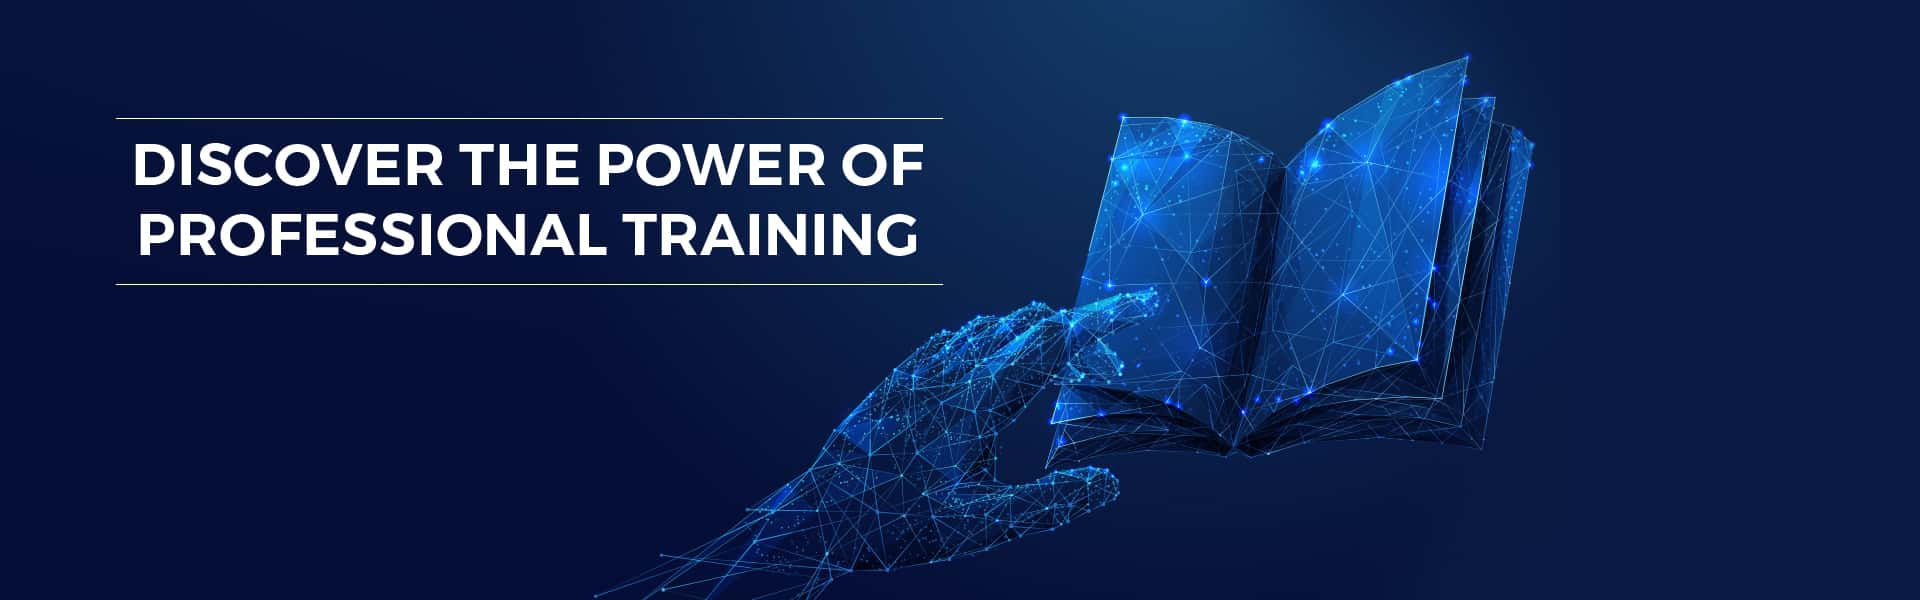 Discover the power of professional training